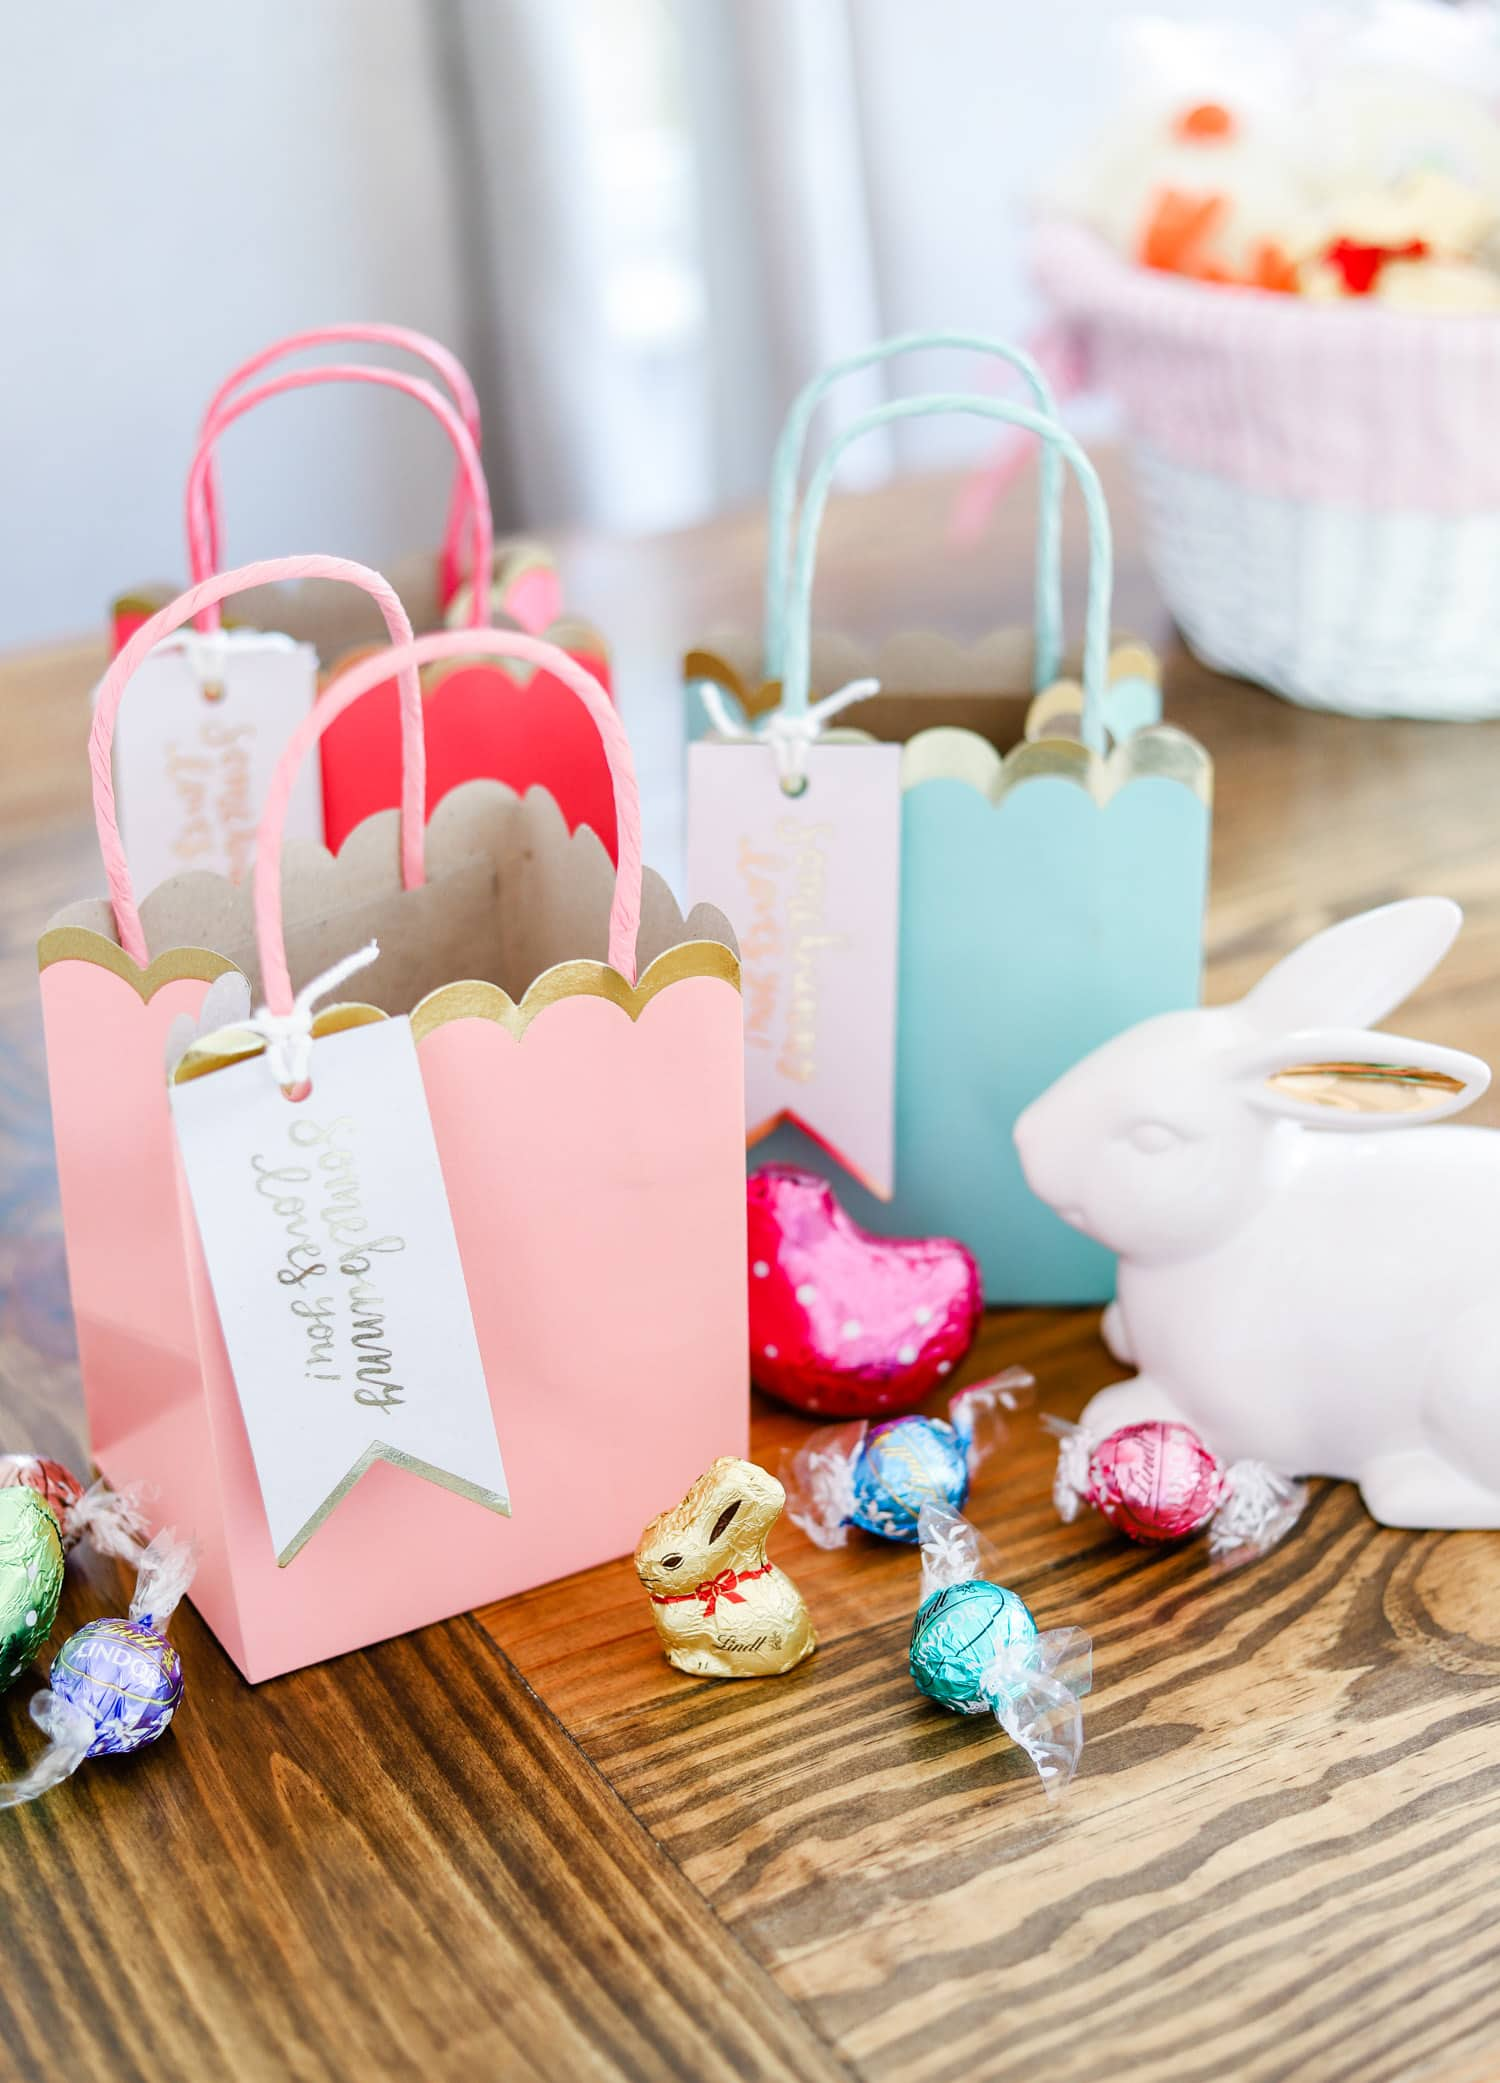 Cute easter basket ideas party favors ashley brooke nicholas cute easter party ideas lindt gold bunny negle Gallery